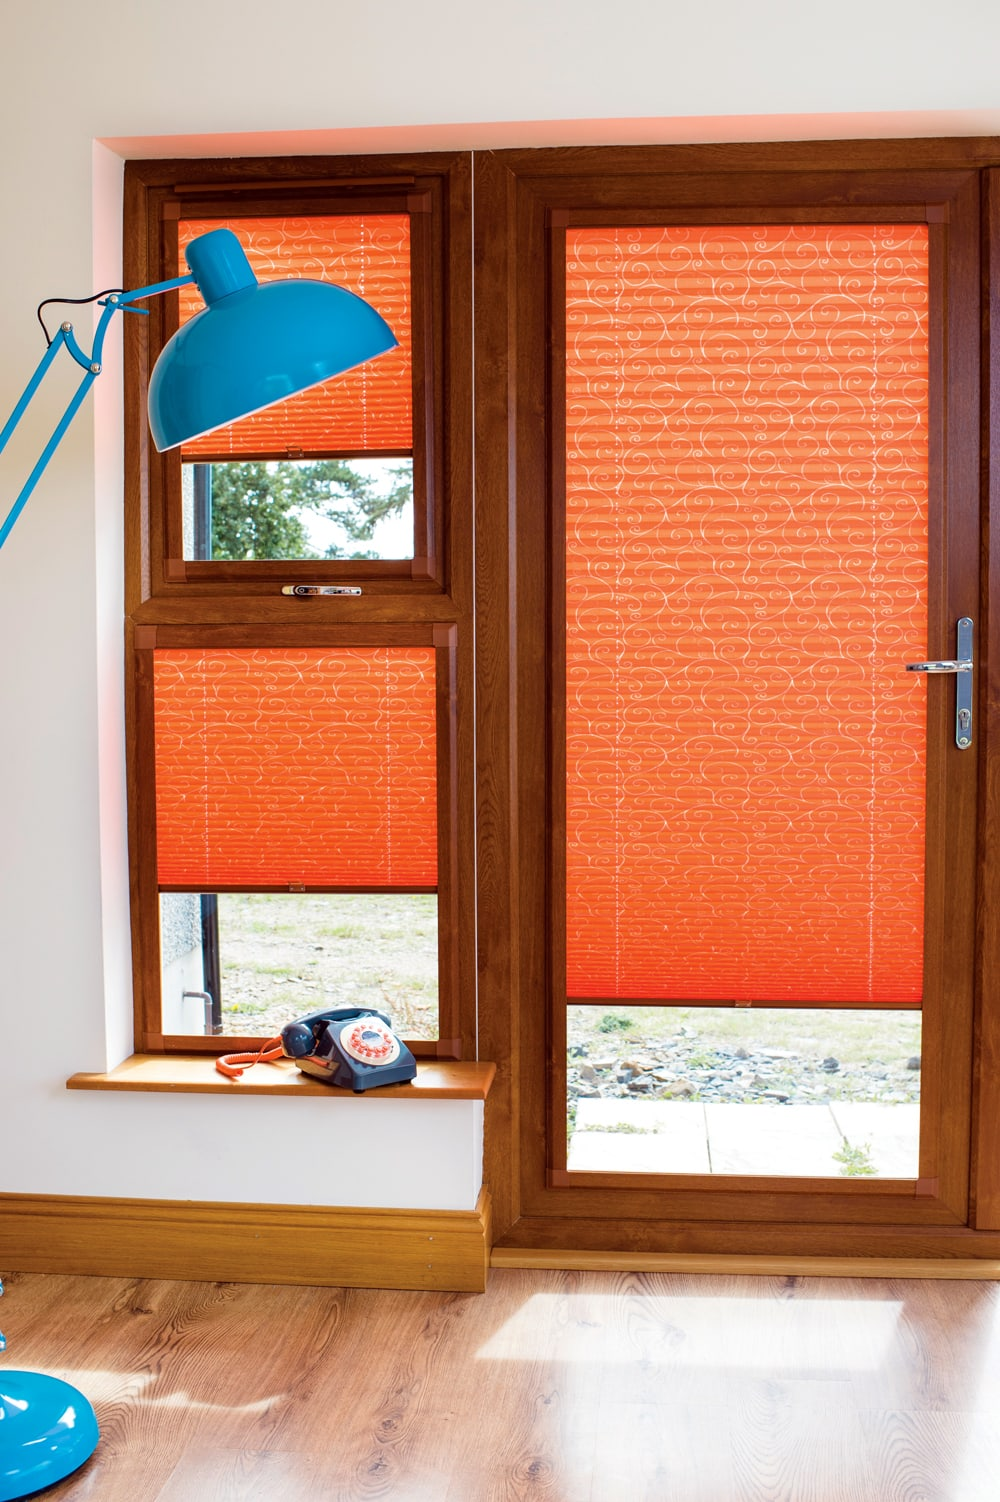 Perfect Fit Blinds : Perfect fit blinds norwich sunblinds